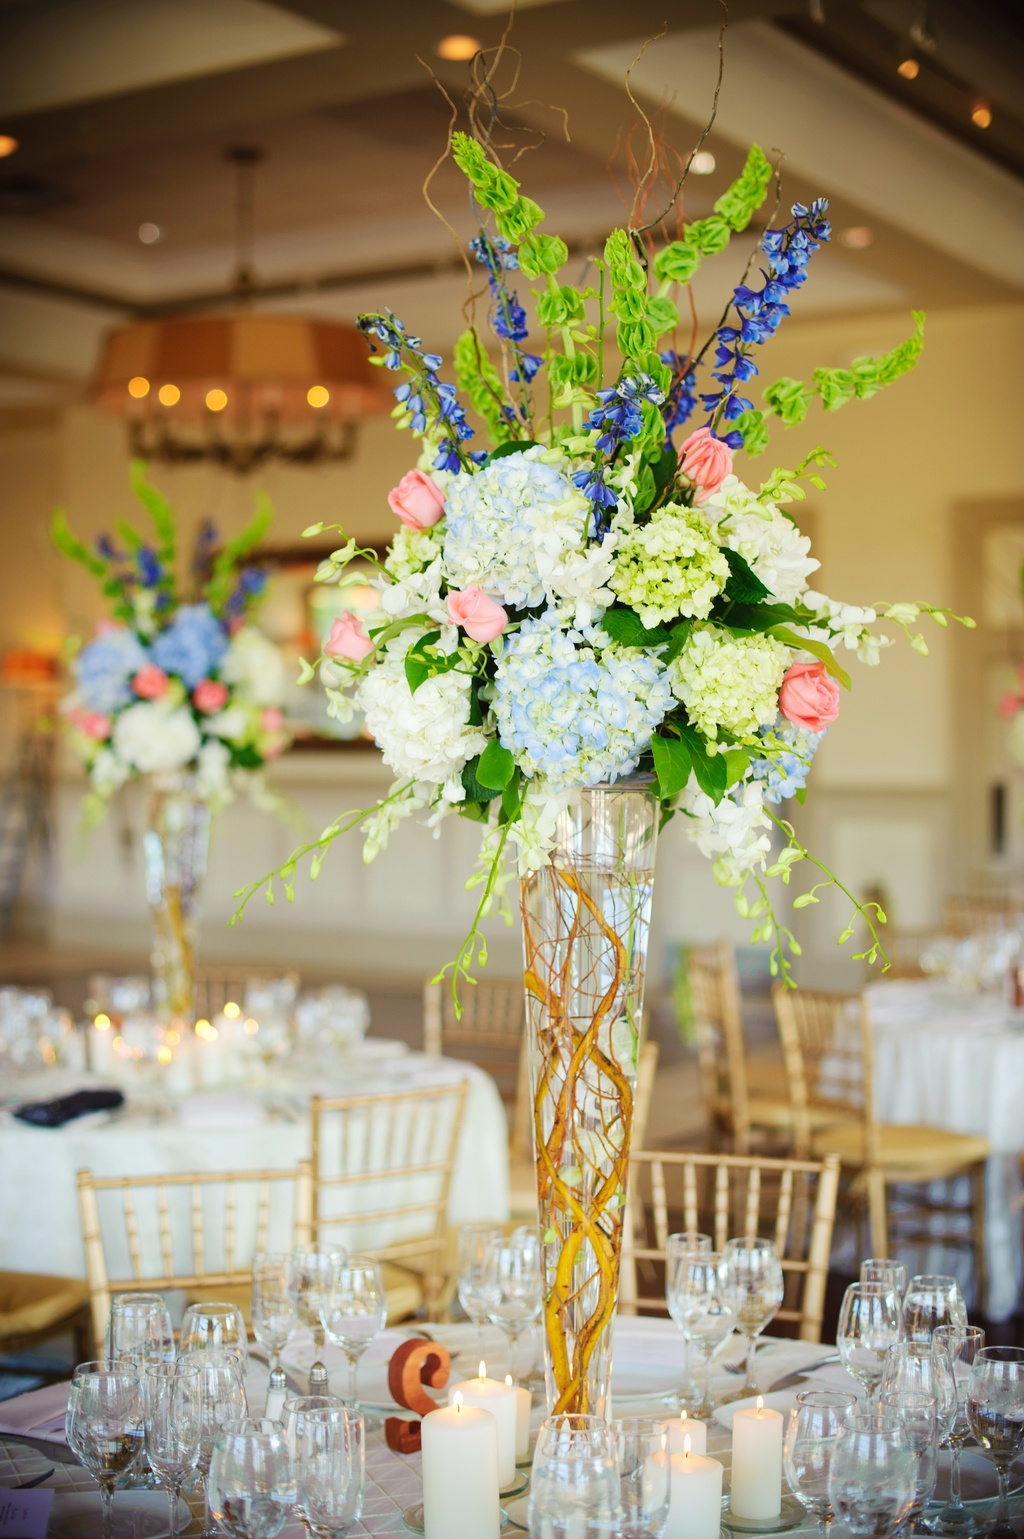 Elegant-real-wedding-with-simple-diy-details-spring-topiary-centerpiece.full